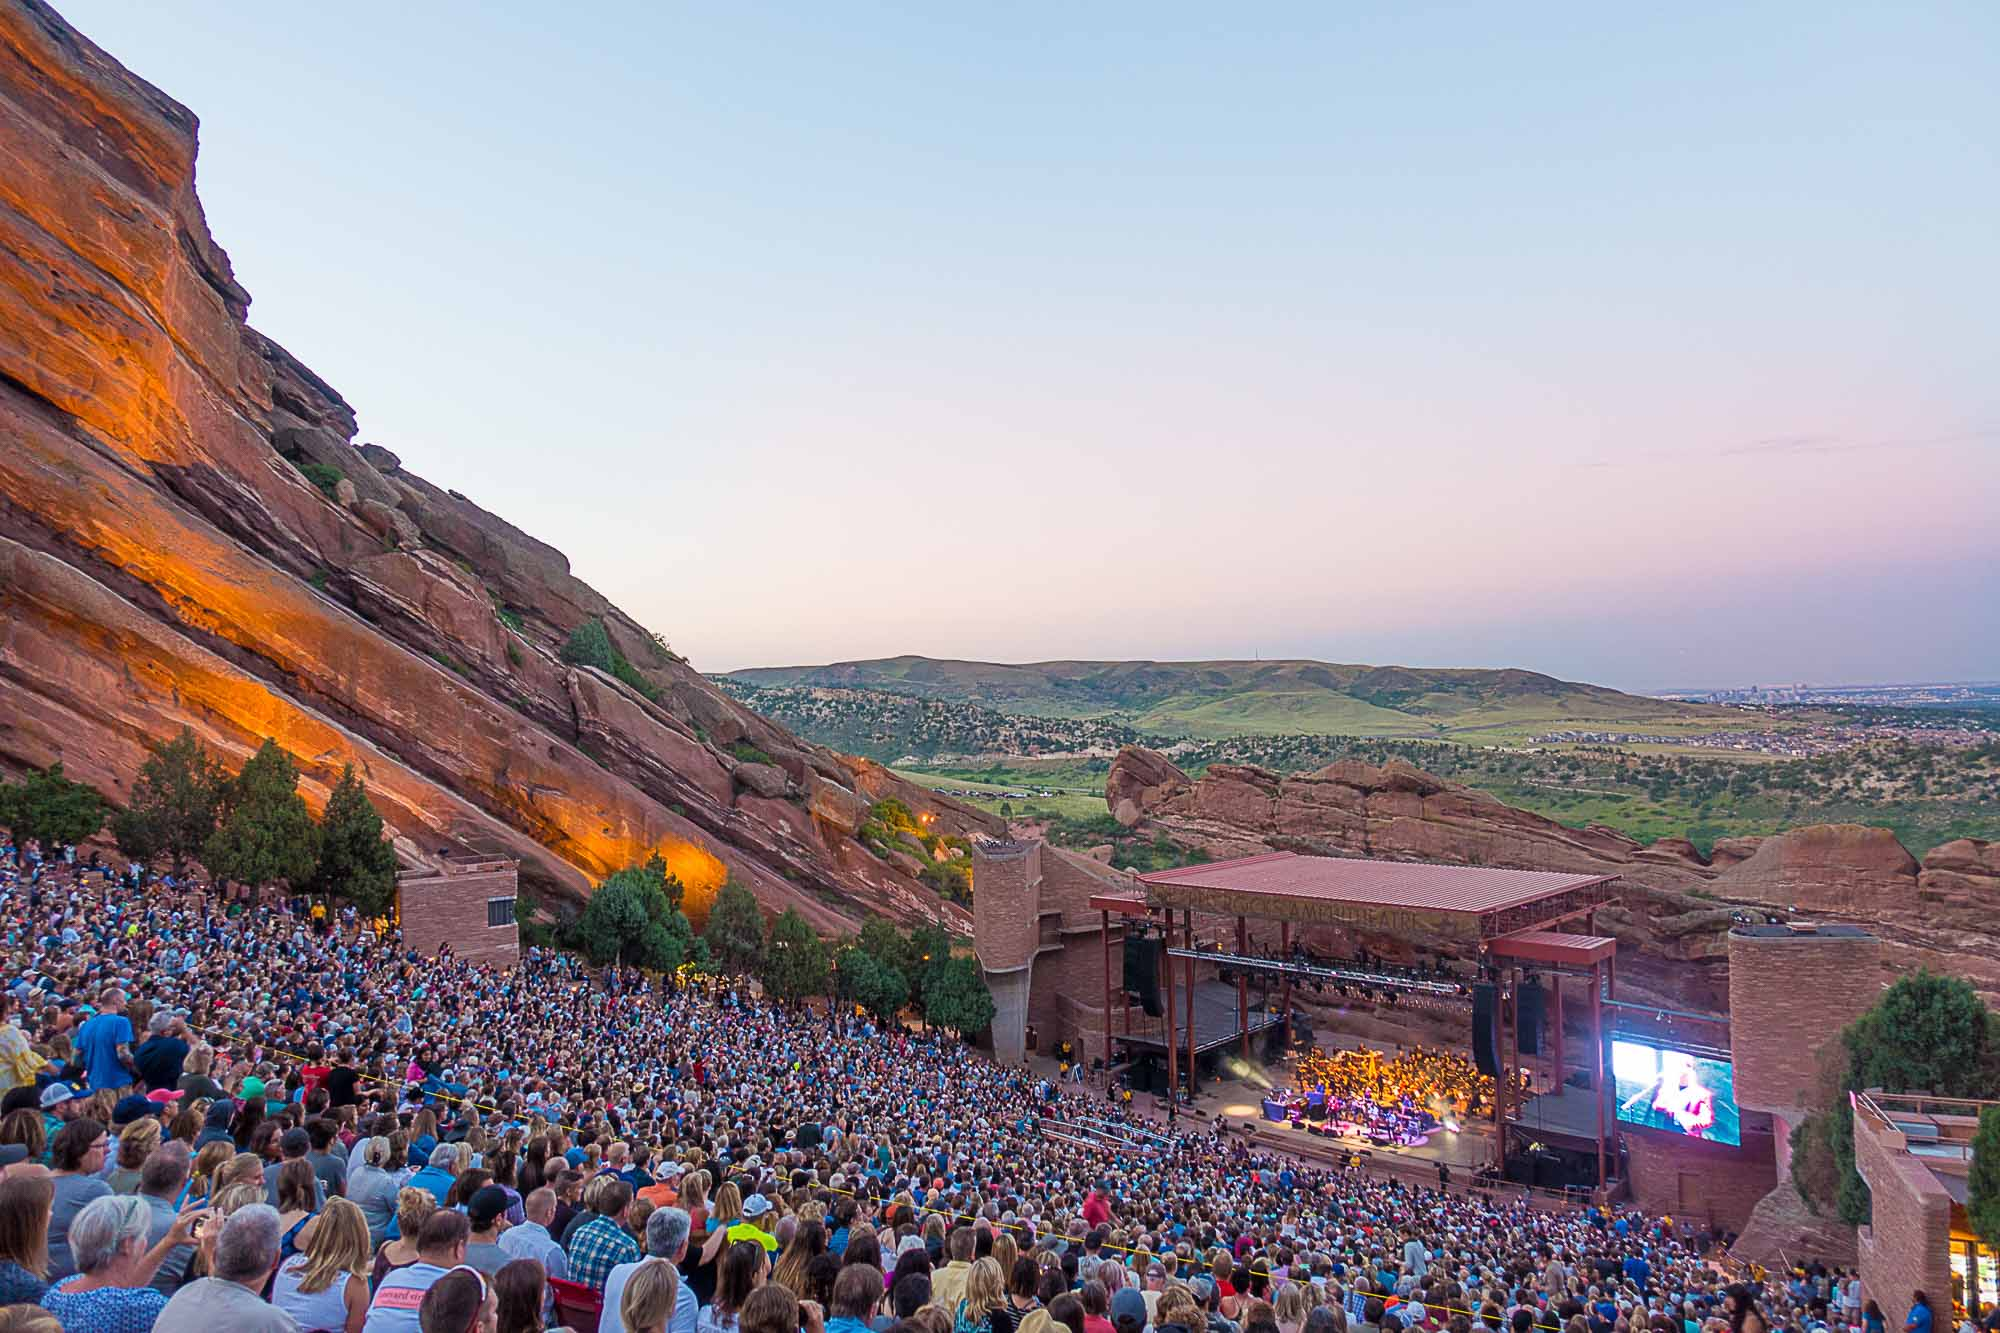 A band performs at Red Rocks in Colorado.